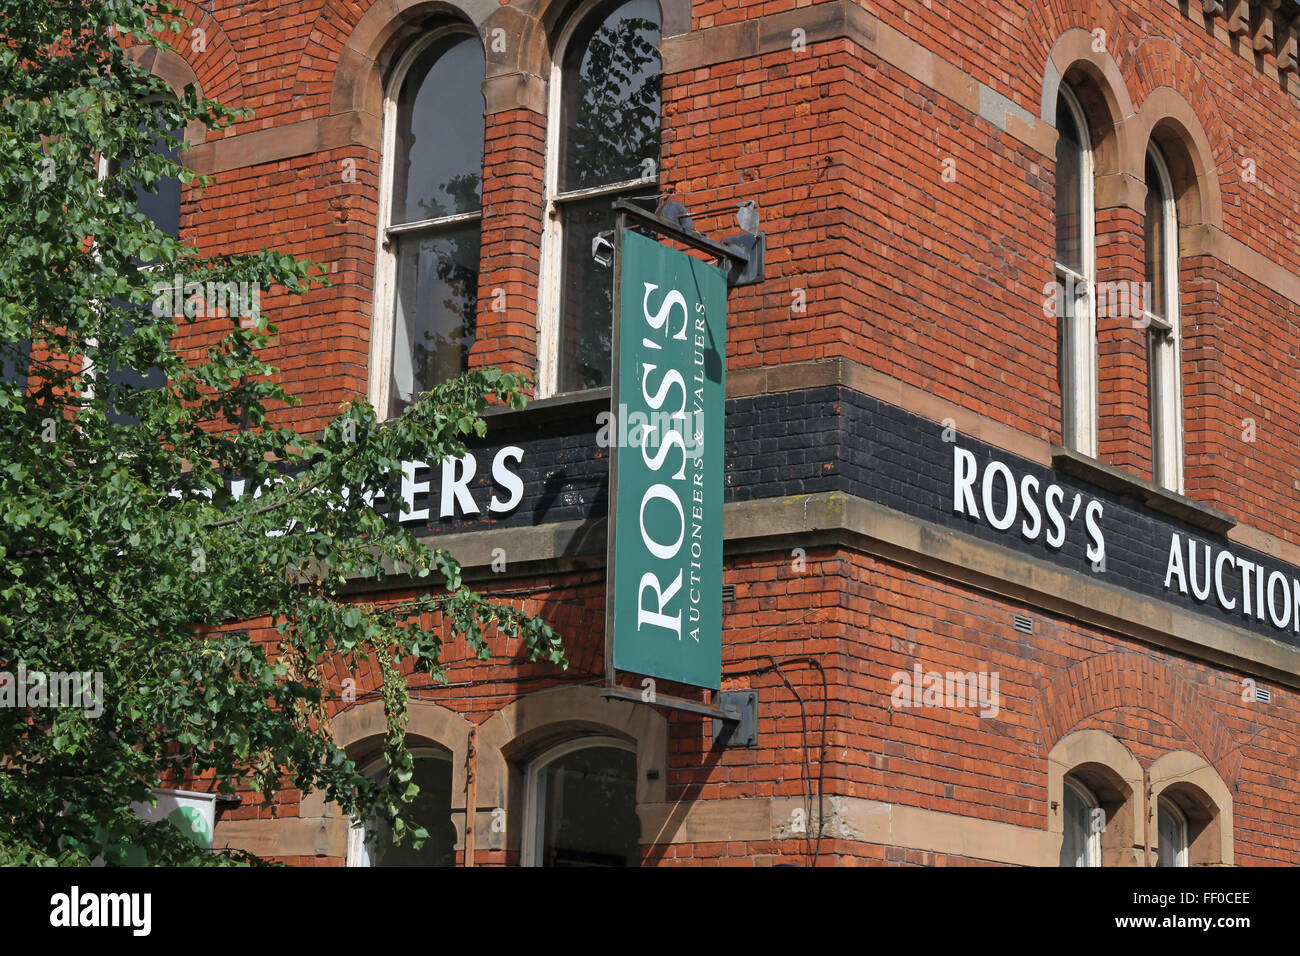 Ross's Auction House in Belfast City Centre. - Stock Image